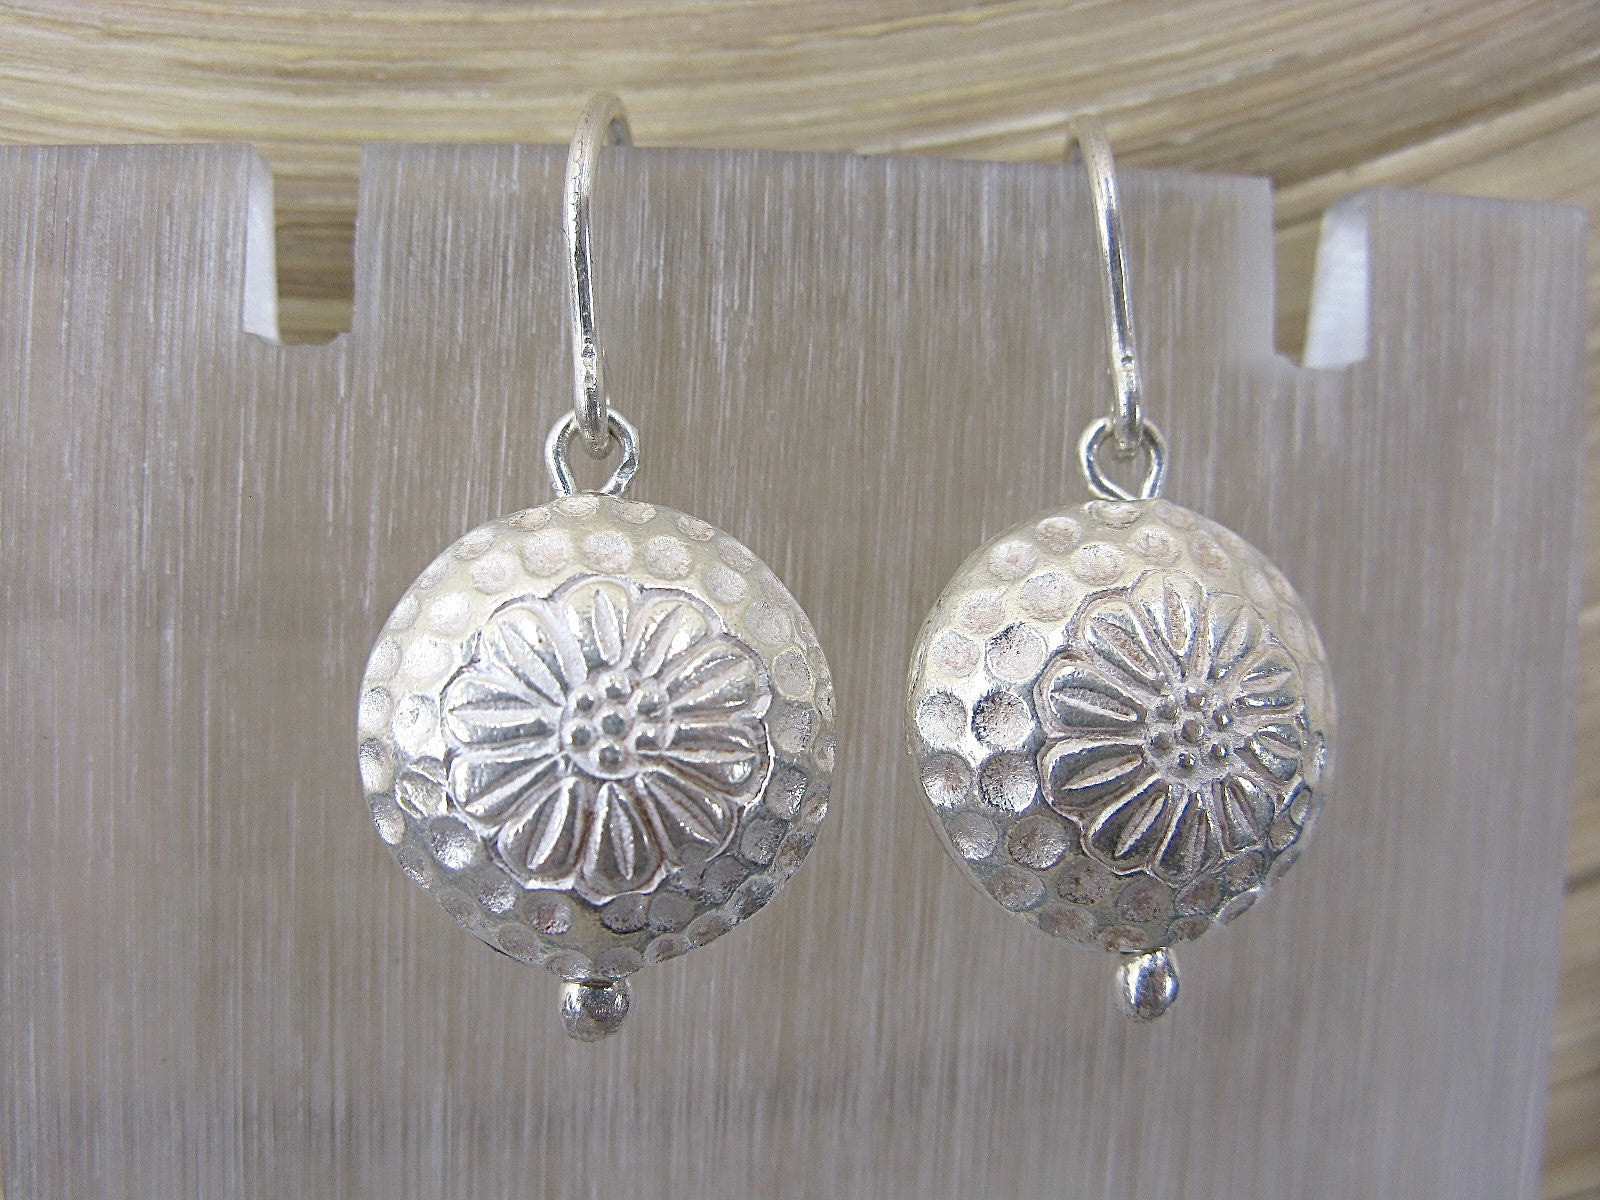 3D Round Tribal Disc Dangle 925 Sterling Silver Earrings Earrings - Faith Owl